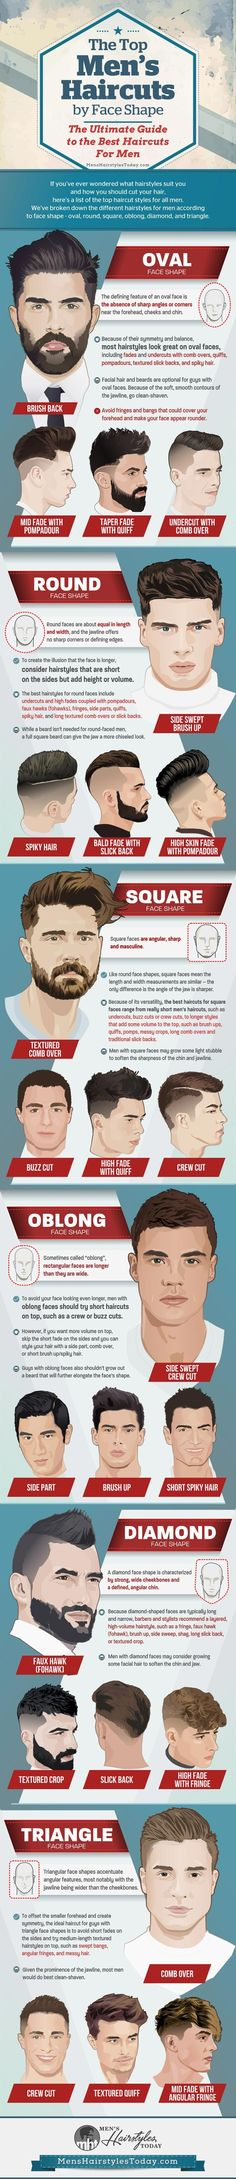 The Best Hairstyles For Men By Face Shape - The Ultimate Guide to Cool Men's Haircuts (Fades, Undercuts, Pompadours, Side Parts, Comb Overs, Quiffs, and Spiky Hair) More